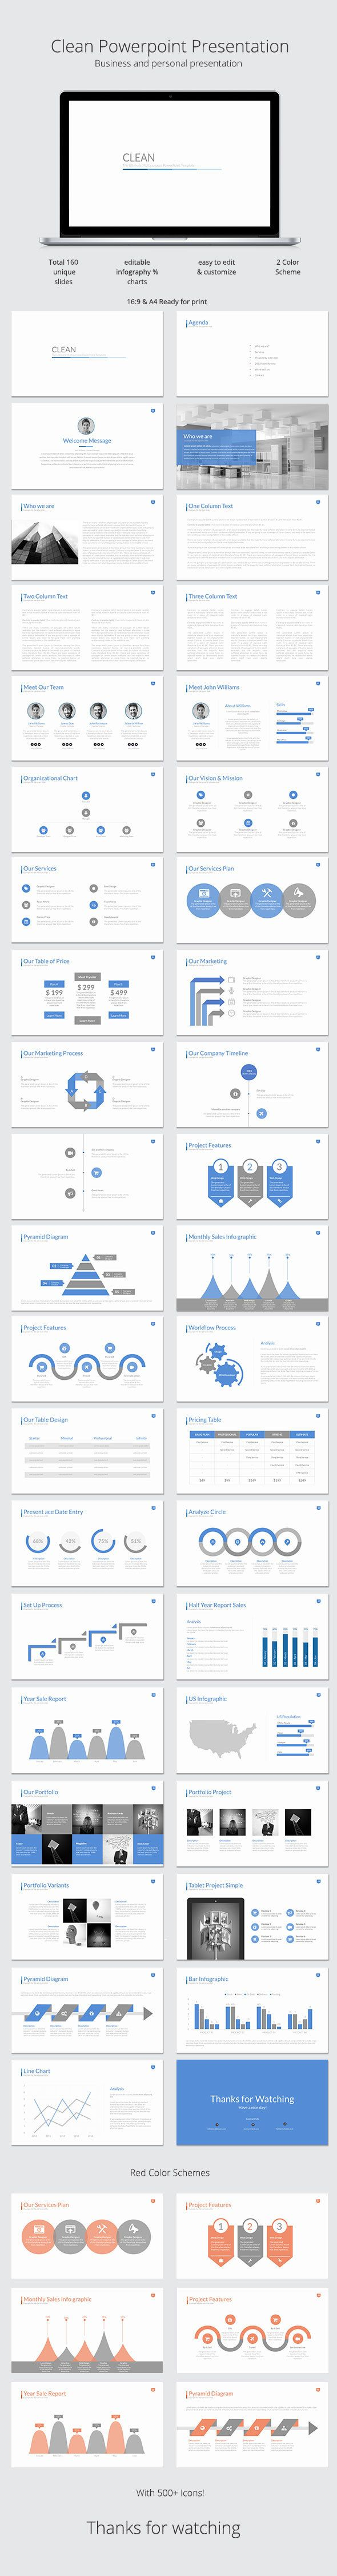 Coolmathgamesus  Pleasing  Ideas About Powerpoint Presentations On Pinterest With Magnificent Clean Powerpoint Template With Nice Scientific Method Middle School Powerpoint Also Ferpa Powerpoint In Addition Fall Powerpoint Template And Powerpoint On Main Idea And Supporting Details As Well As Creating Posters In Powerpoint Additionally Army Leadership Powerpoint From Pinterestcom With Coolmathgamesus  Magnificent  Ideas About Powerpoint Presentations On Pinterest With Nice Clean Powerpoint Template And Pleasing Scientific Method Middle School Powerpoint Also Ferpa Powerpoint In Addition Fall Powerpoint Template From Pinterestcom